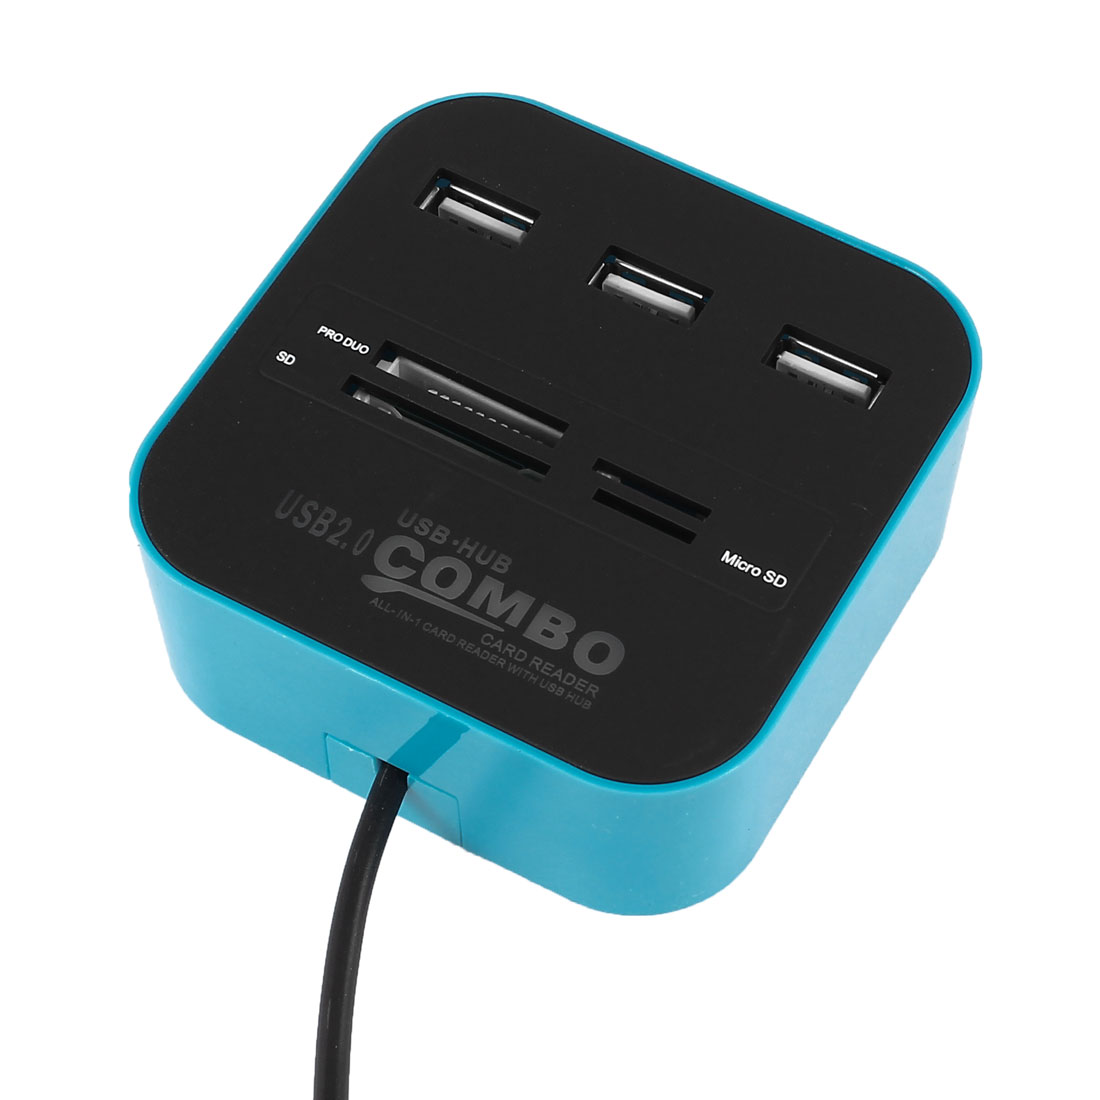 Unique Bargains 3 Port Powered USB 2.0 Hub Expander + Multi Memory Card Reader Combo